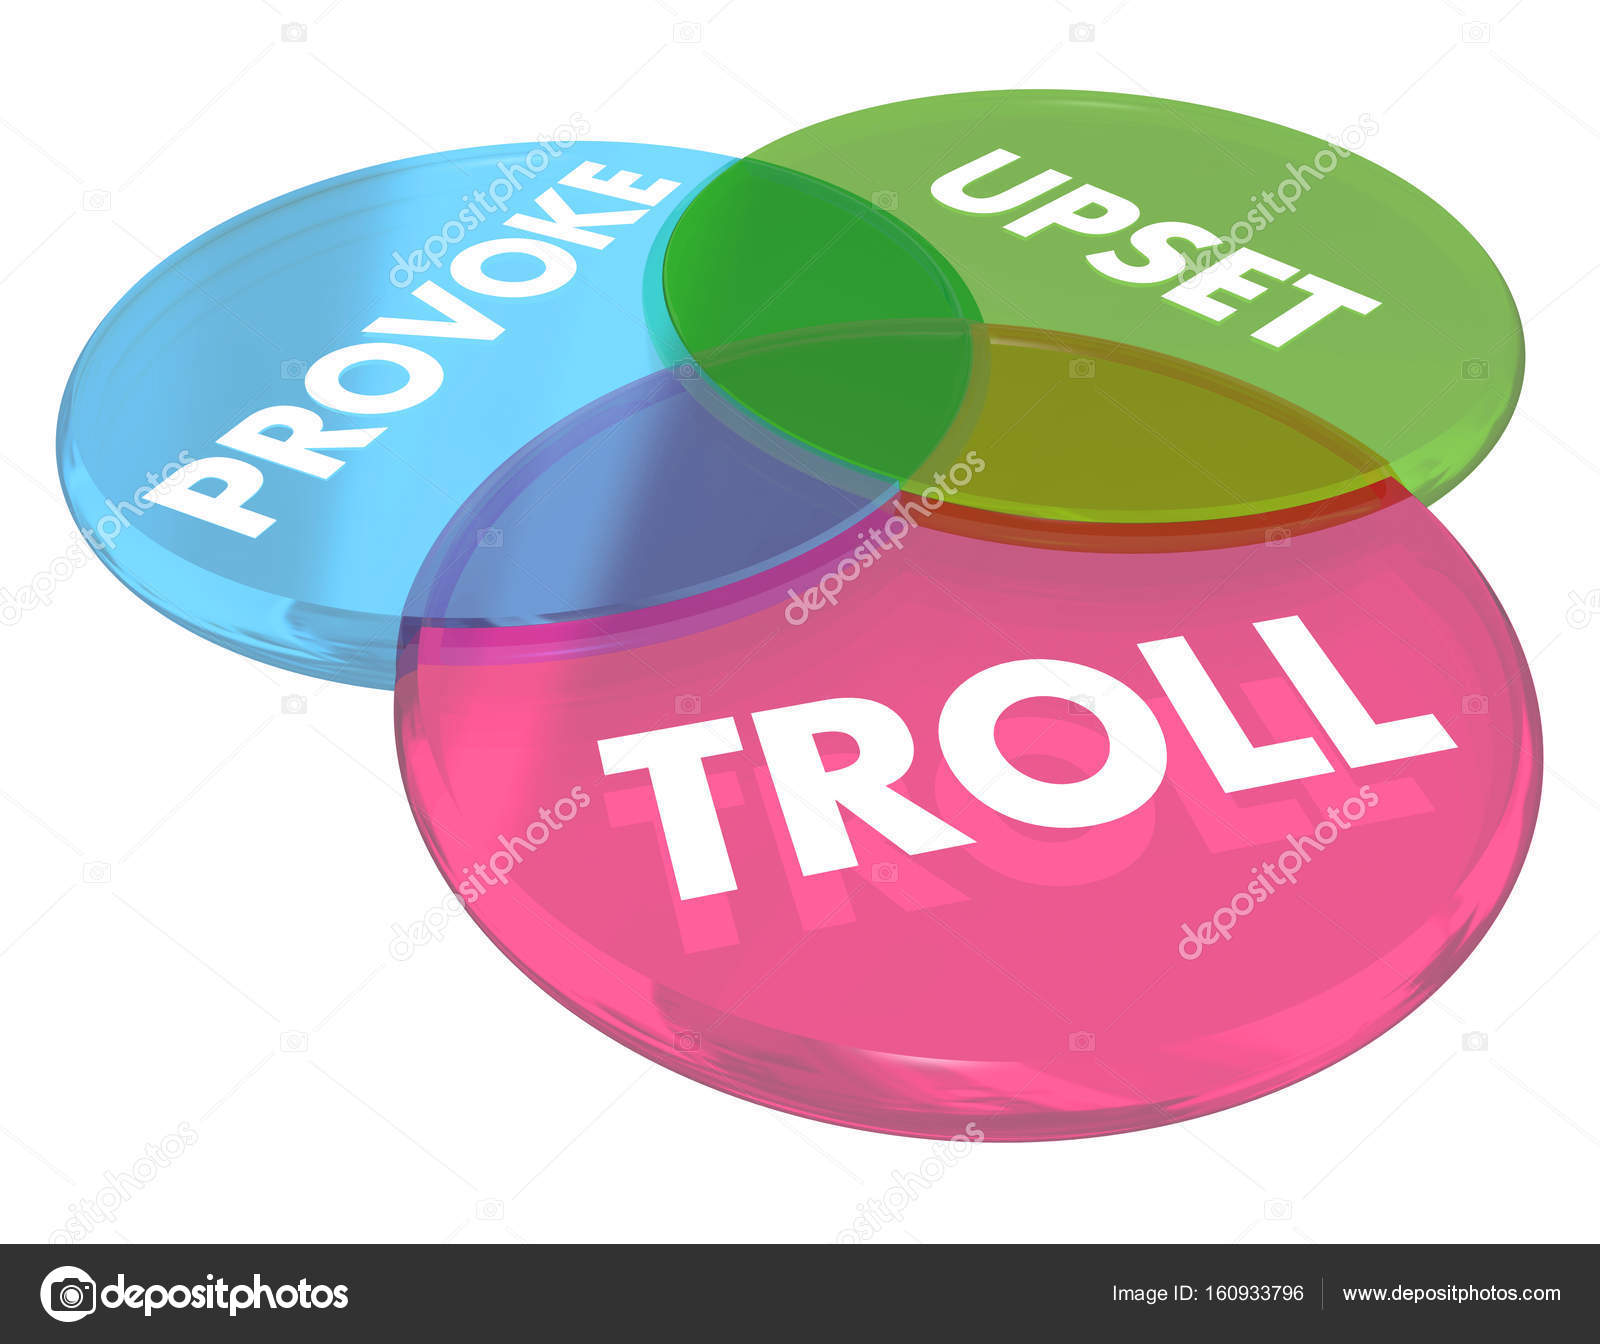 Troll provoke upset venn diagram stock photo iqoncept 160933796 troll provoke upset venn diagram stock photo ccuart Images